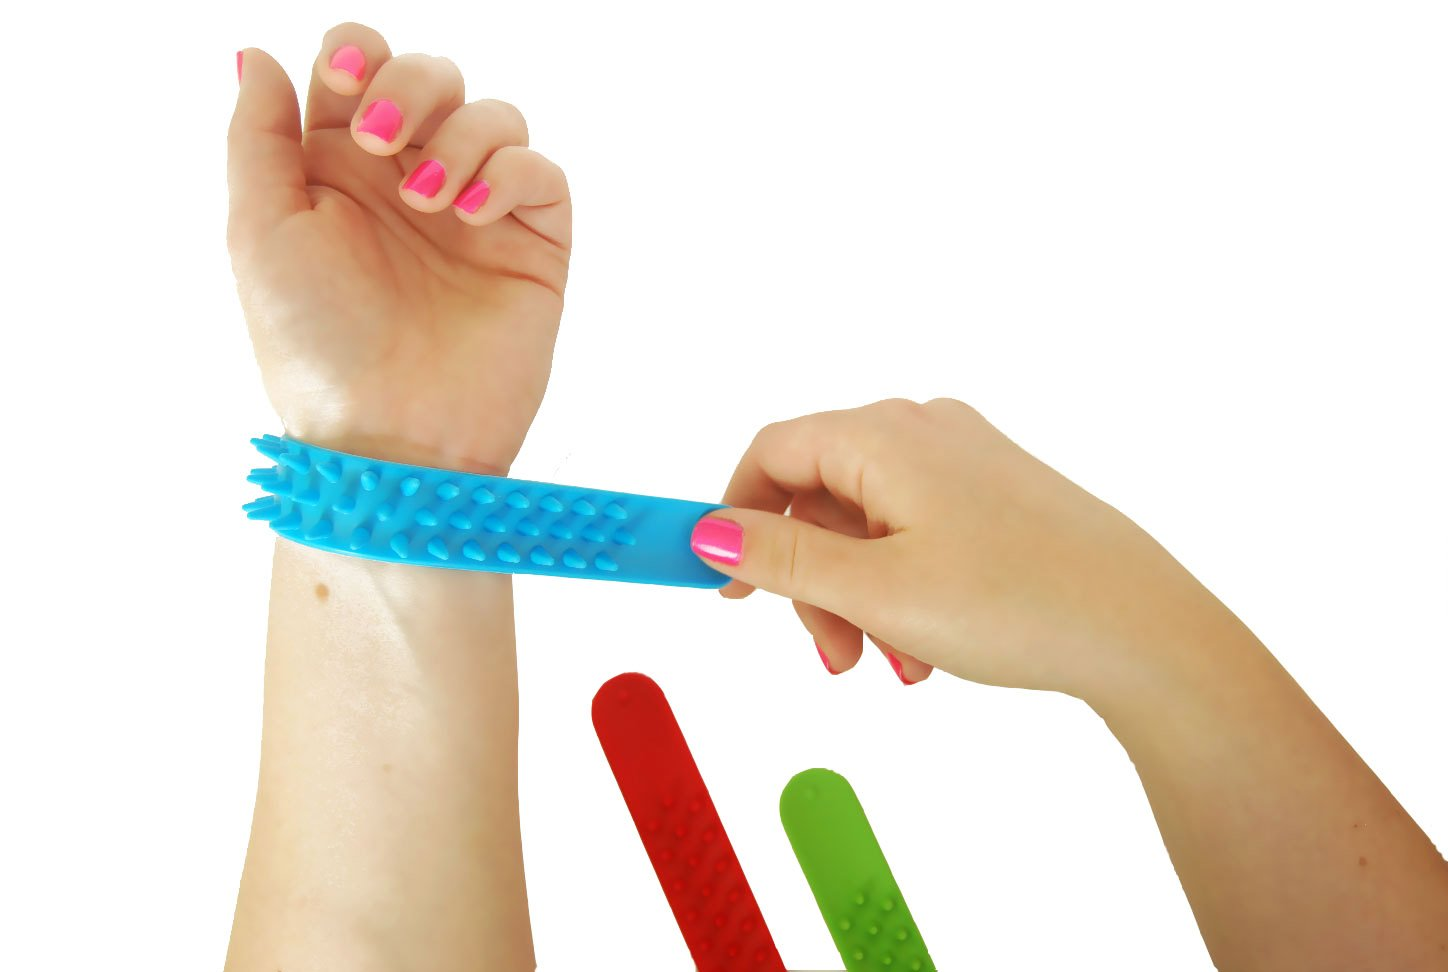 Spiky Slap Bracelets / Slap Bands (3 Pack) - Great Sensory Toys / Fidget Toys - BPA/Phthalate/Latex-Free by Impresa Products (Image #5)